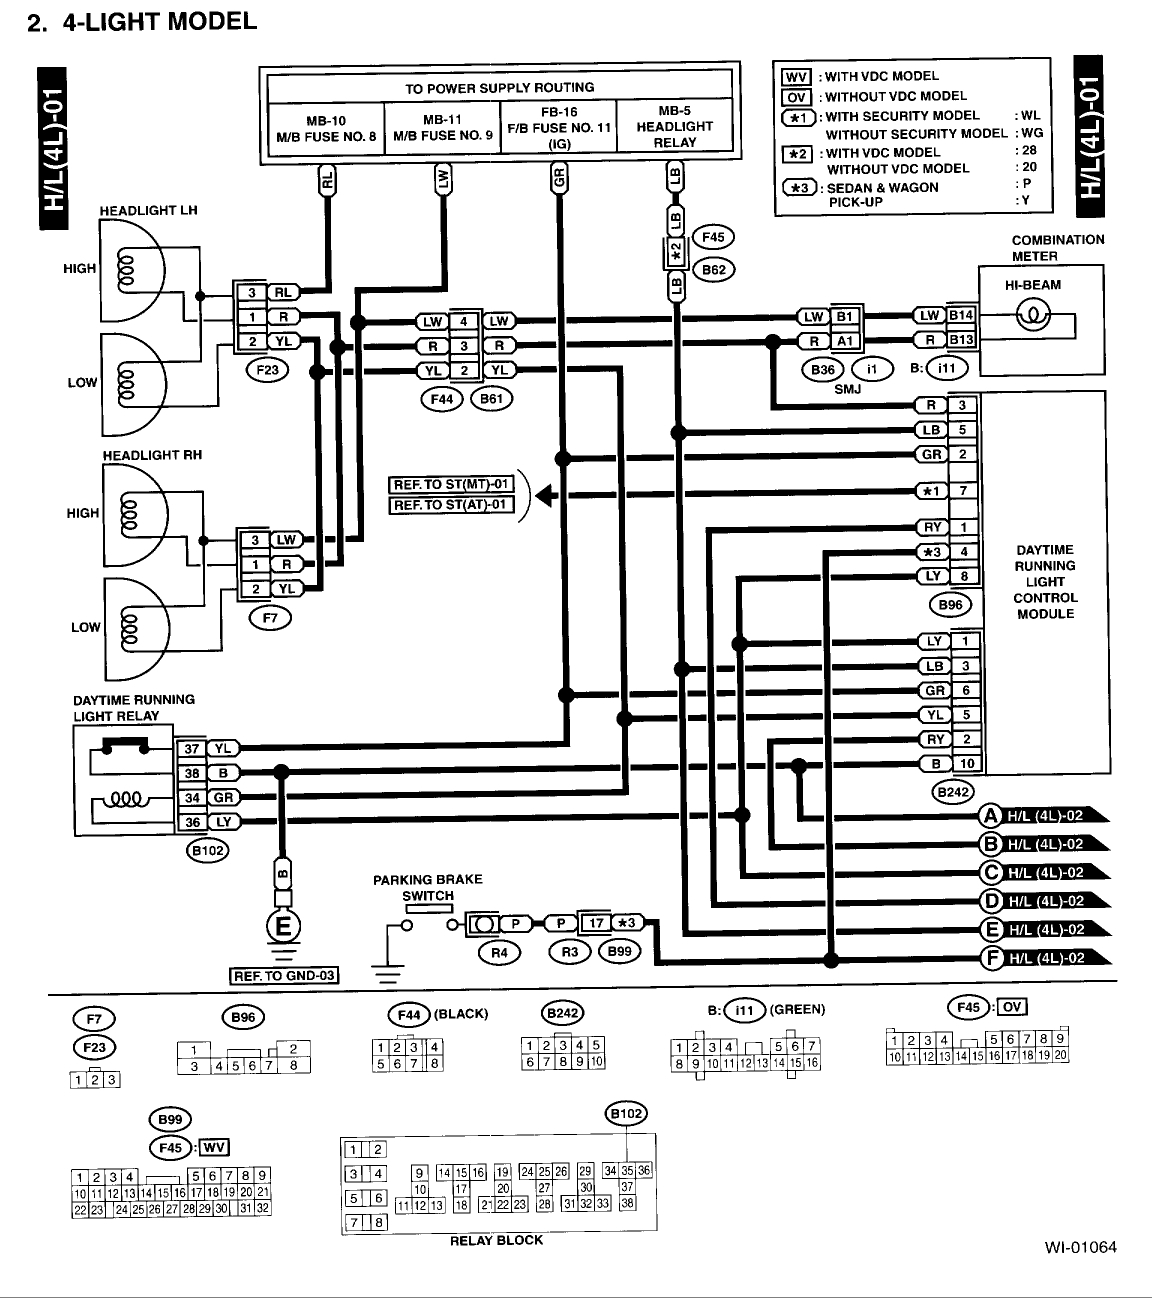 hight resolution of 2001 subaru impreza air conditioning diagram on subaru ac diagram subaru ac compressor wiring diagram subaru ac wiring diagram